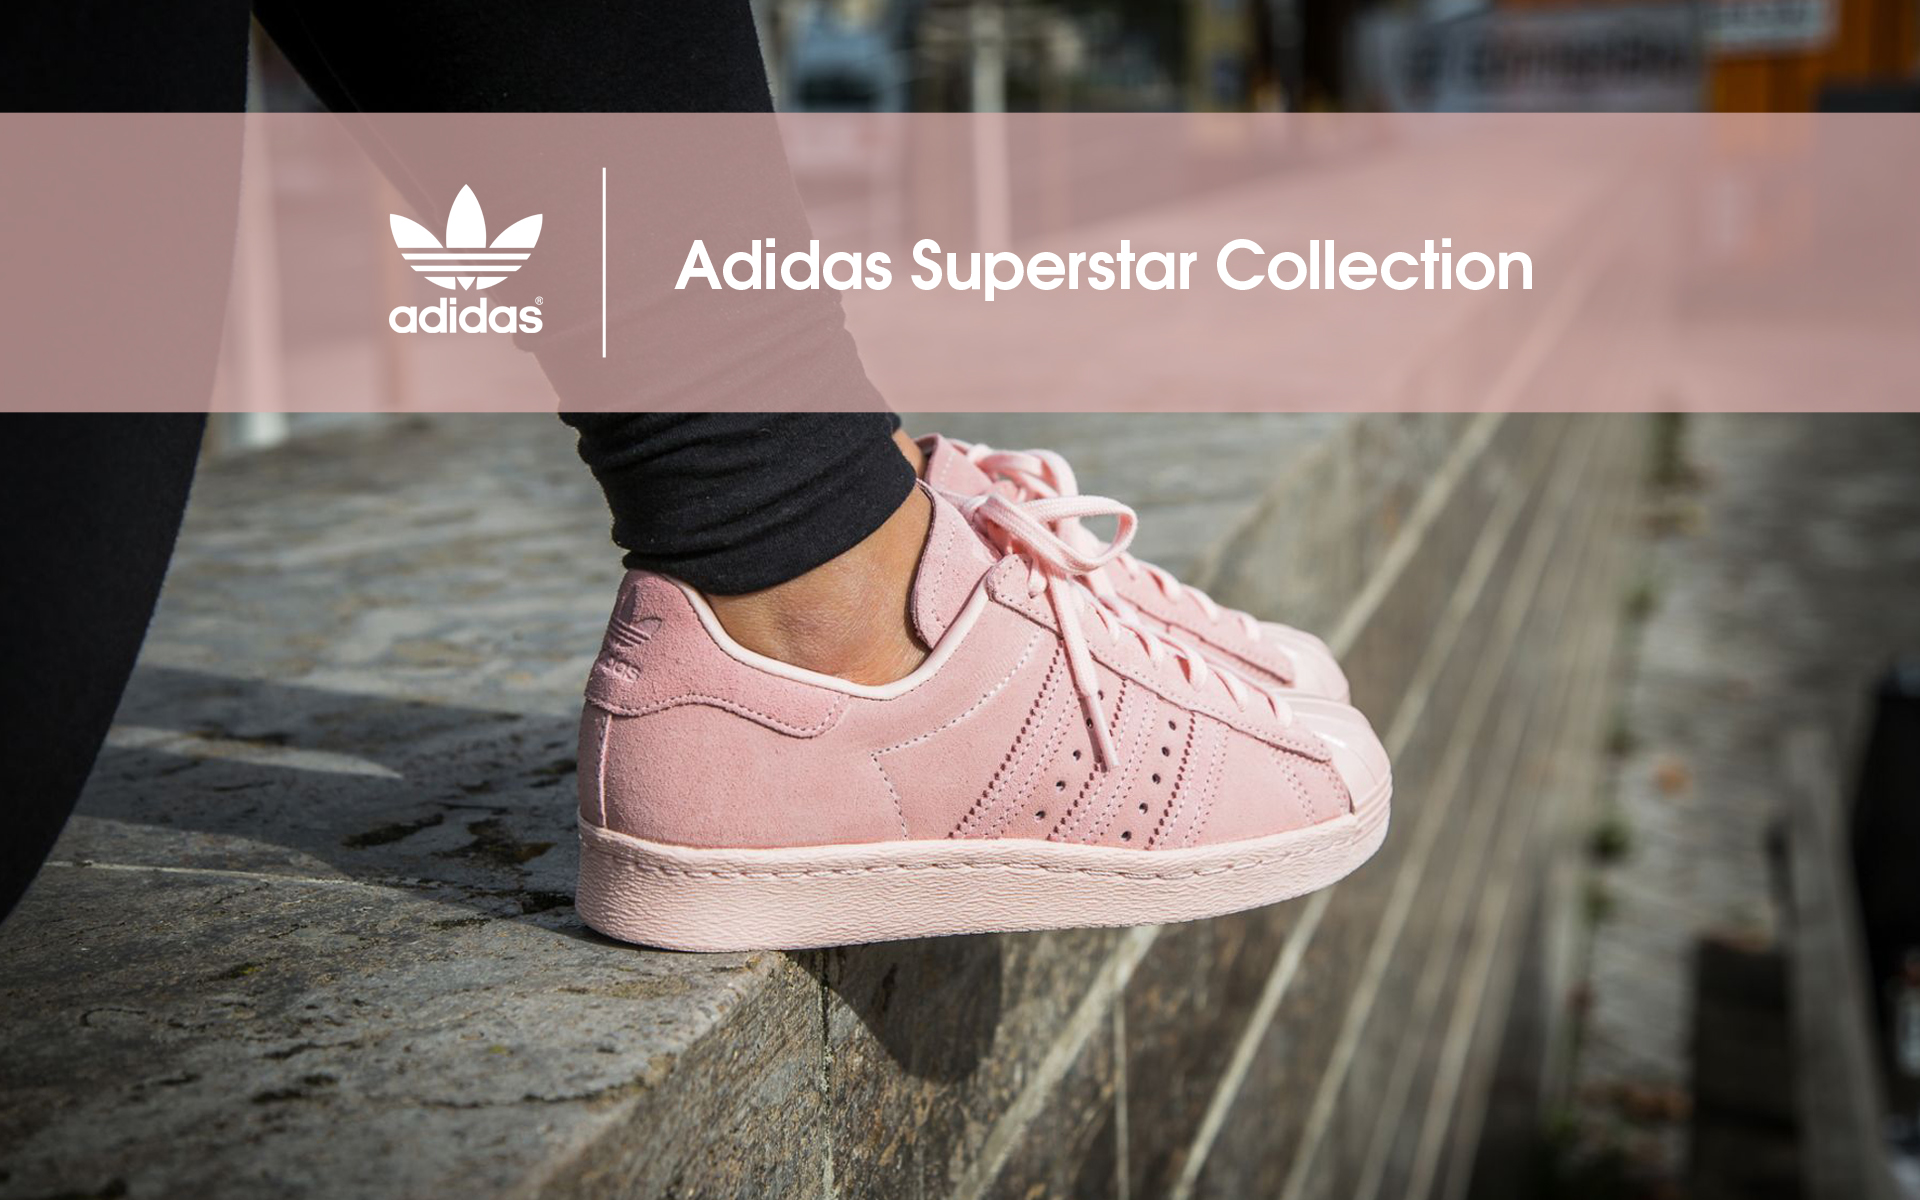 adidas collection website